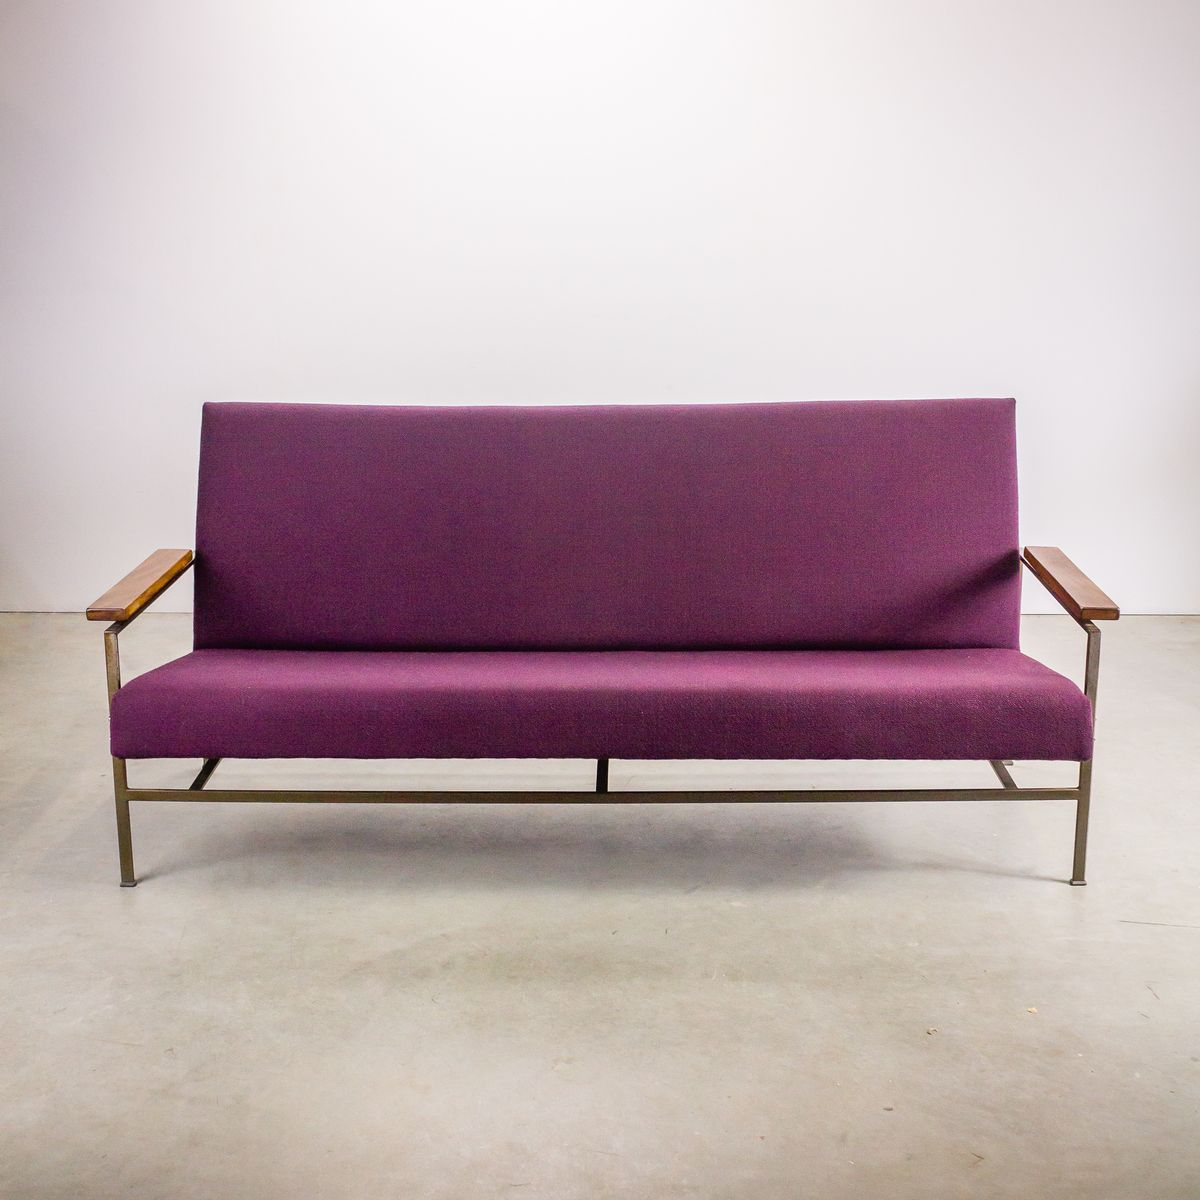 Sofa Dutch Dutch Purple Sofa By Rob Parry For Gelderland 1960s For Sale At